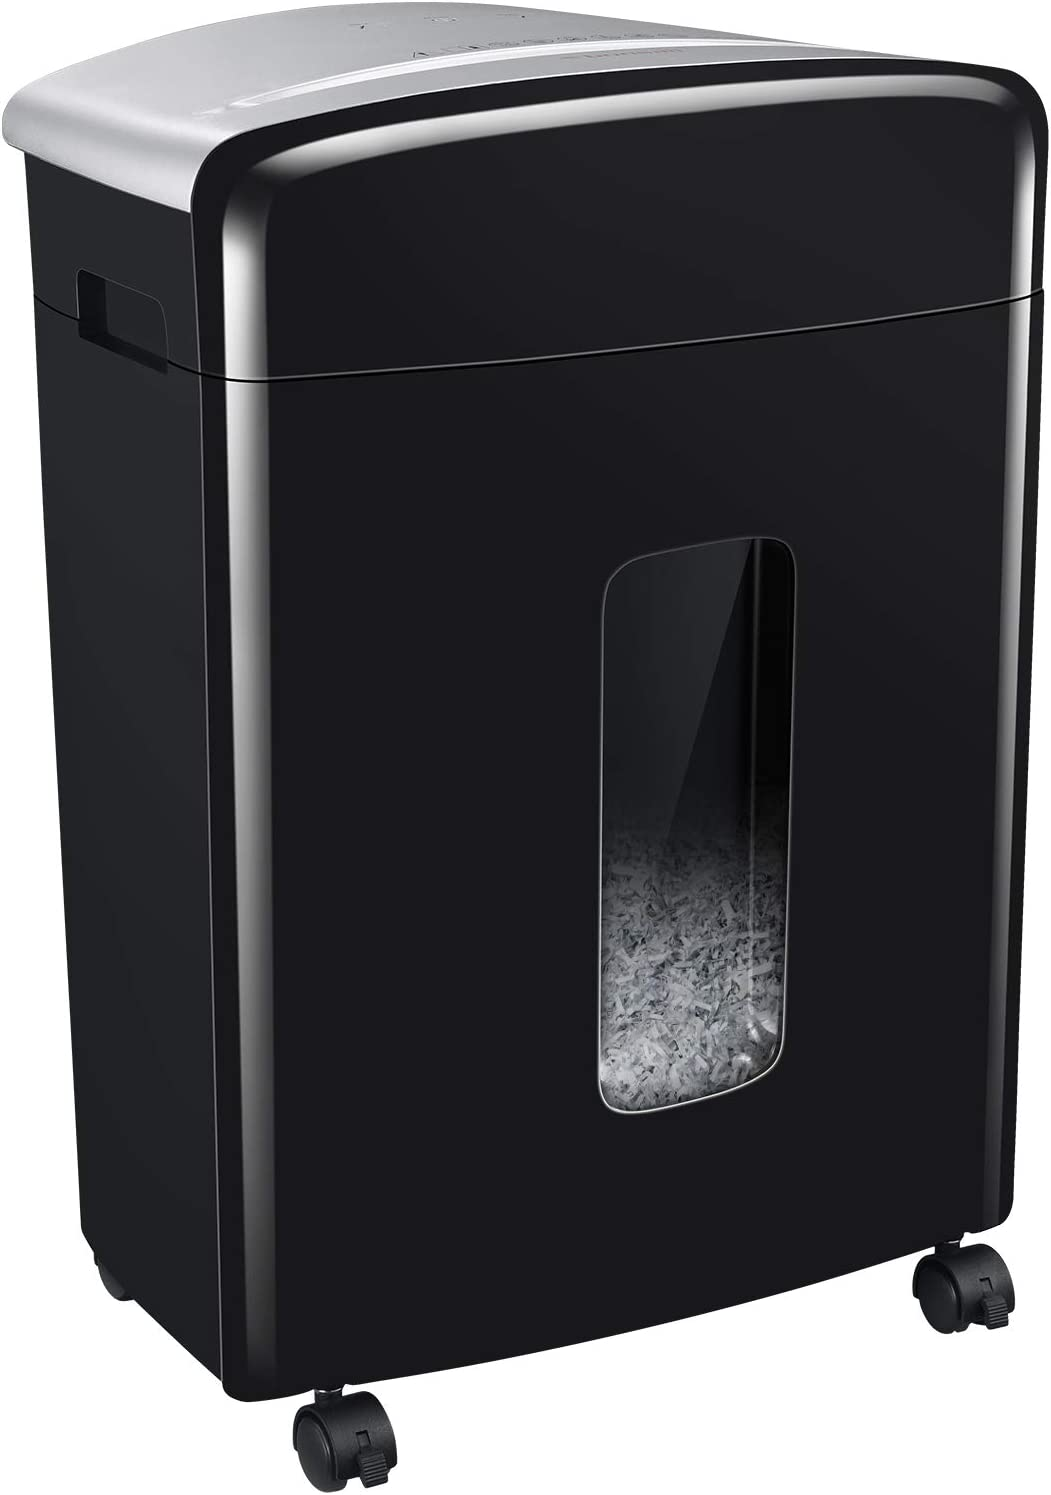 Bonsaii 16-Sheet Micro-Cut Paper and Credit Card Shredder, 20 Minutes Running Time, 60 dB Low Operation Noise, 6.6 Gallons Basket and 4 Casters (C222-B)